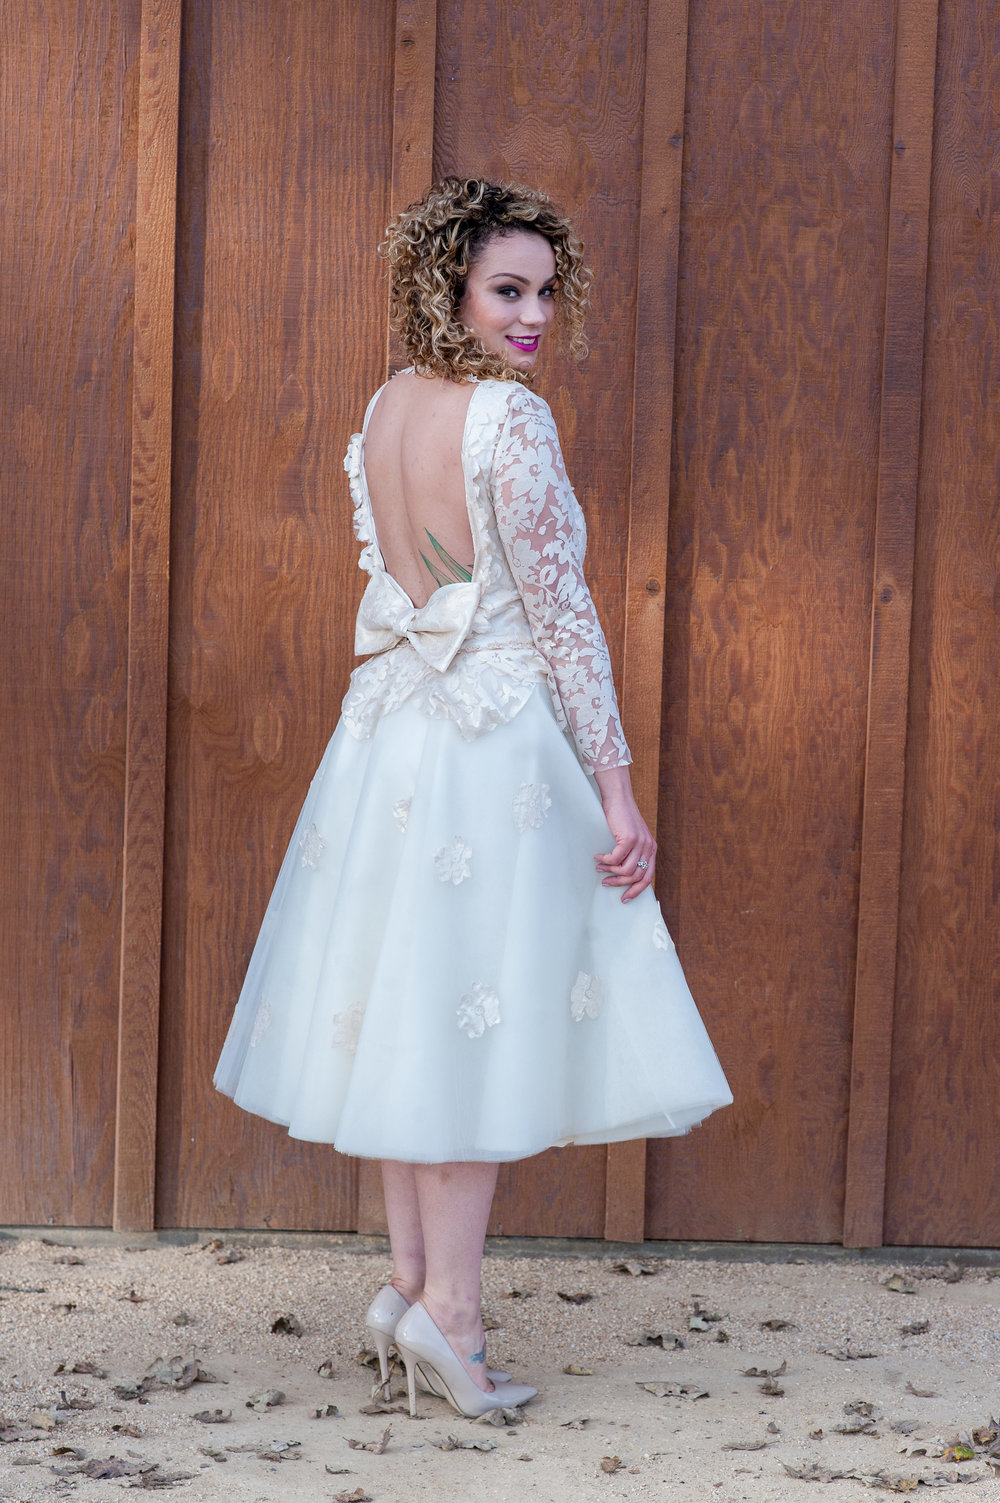 bride at engagement party in white lace dress by taste studio with curly side swept hair and bold pink lipstick and glowing soft glam makeup by kim baker beauty san jose california makeup artist